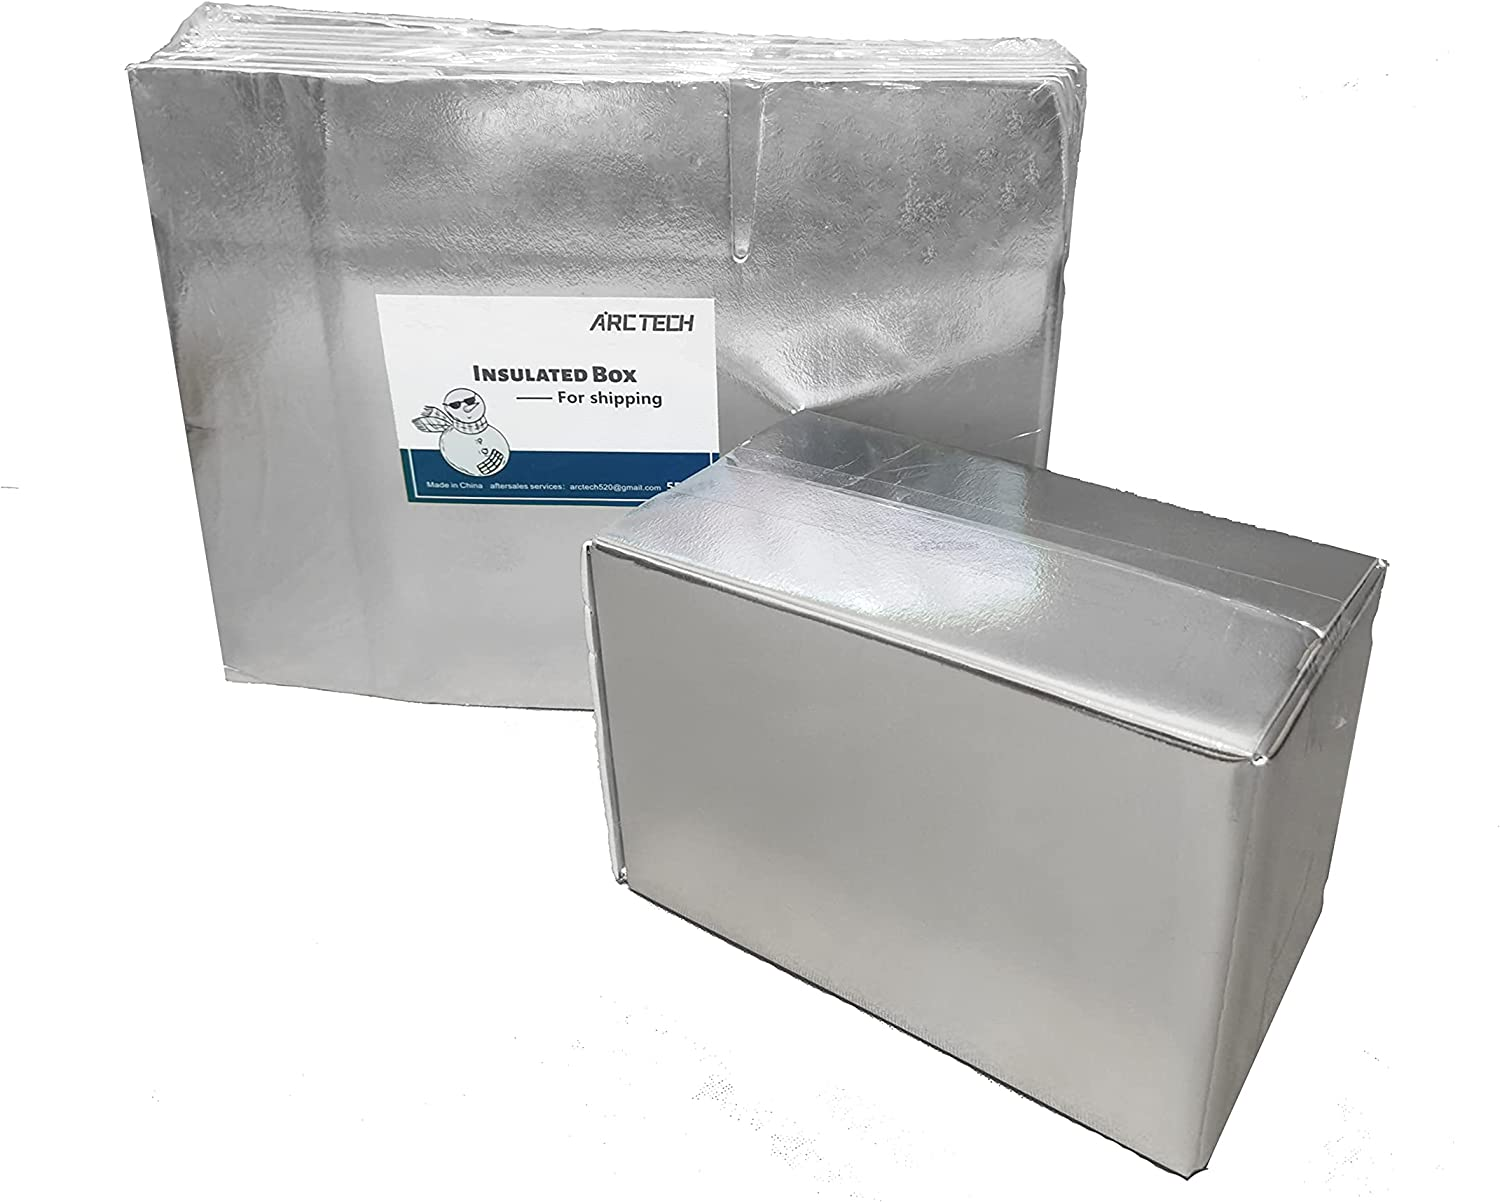 ARCTECH insulated shipping foam Aluminum foil box X 5packs , useful size 9.8X5.7X7'' Thermo Chill Double Insulated delivery mail mailing carton for fresh, frozen sea food, milk, meat.